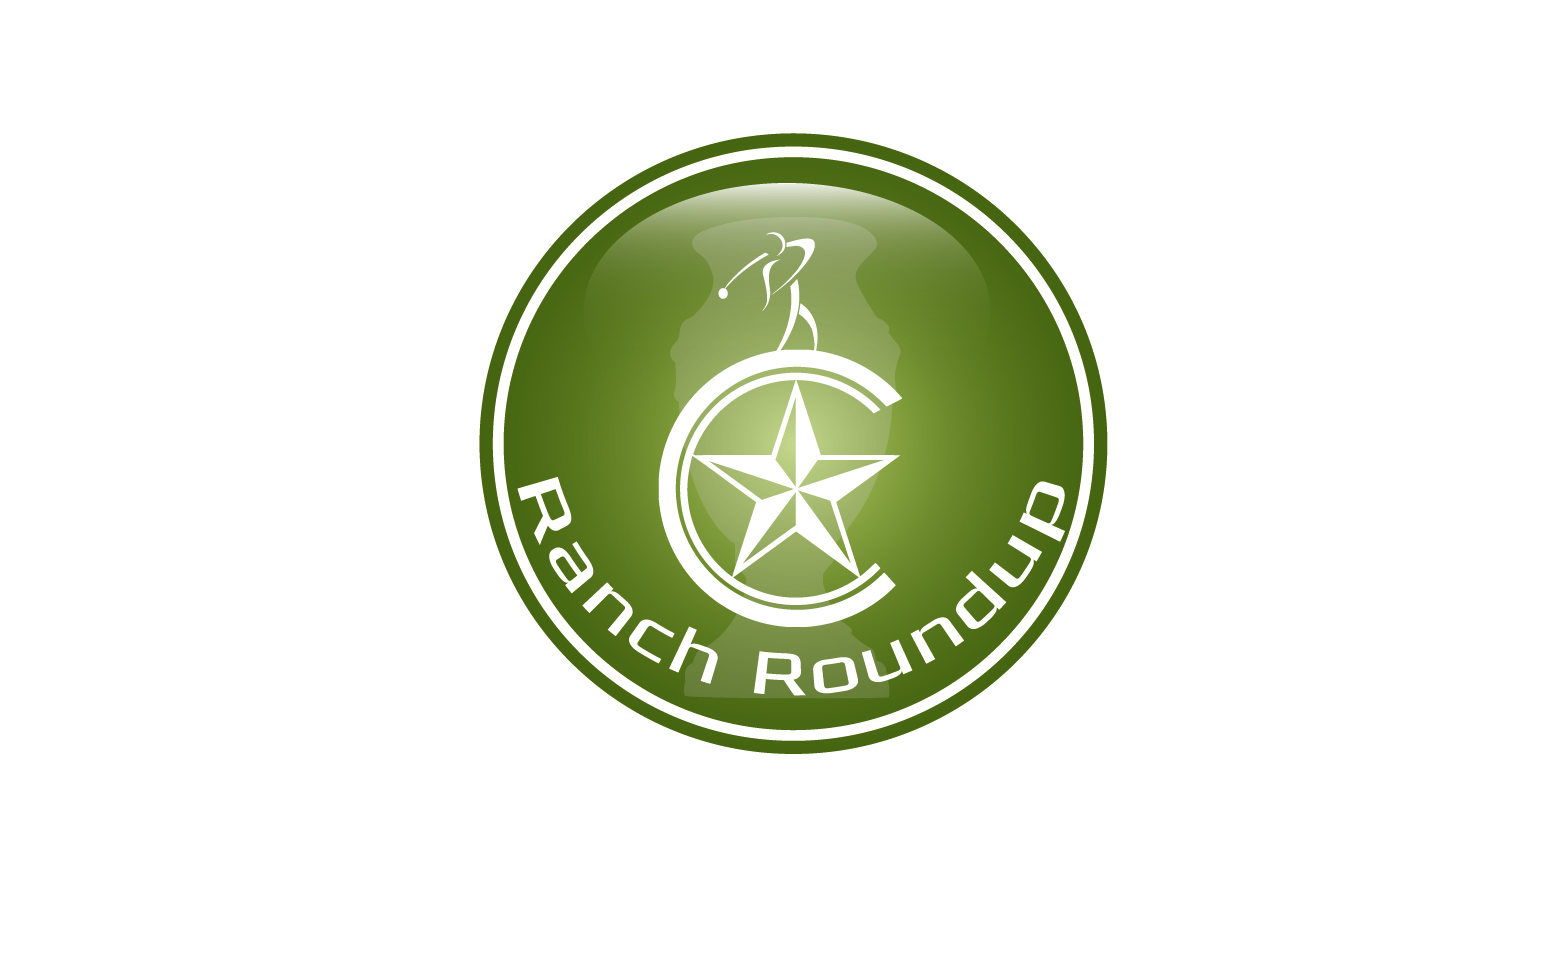 Logo Design by VENTSISLAV KOVACHEV - Entry No. 3 in the Logo Design Contest Captivating Logo Design for Ranch Roundup.